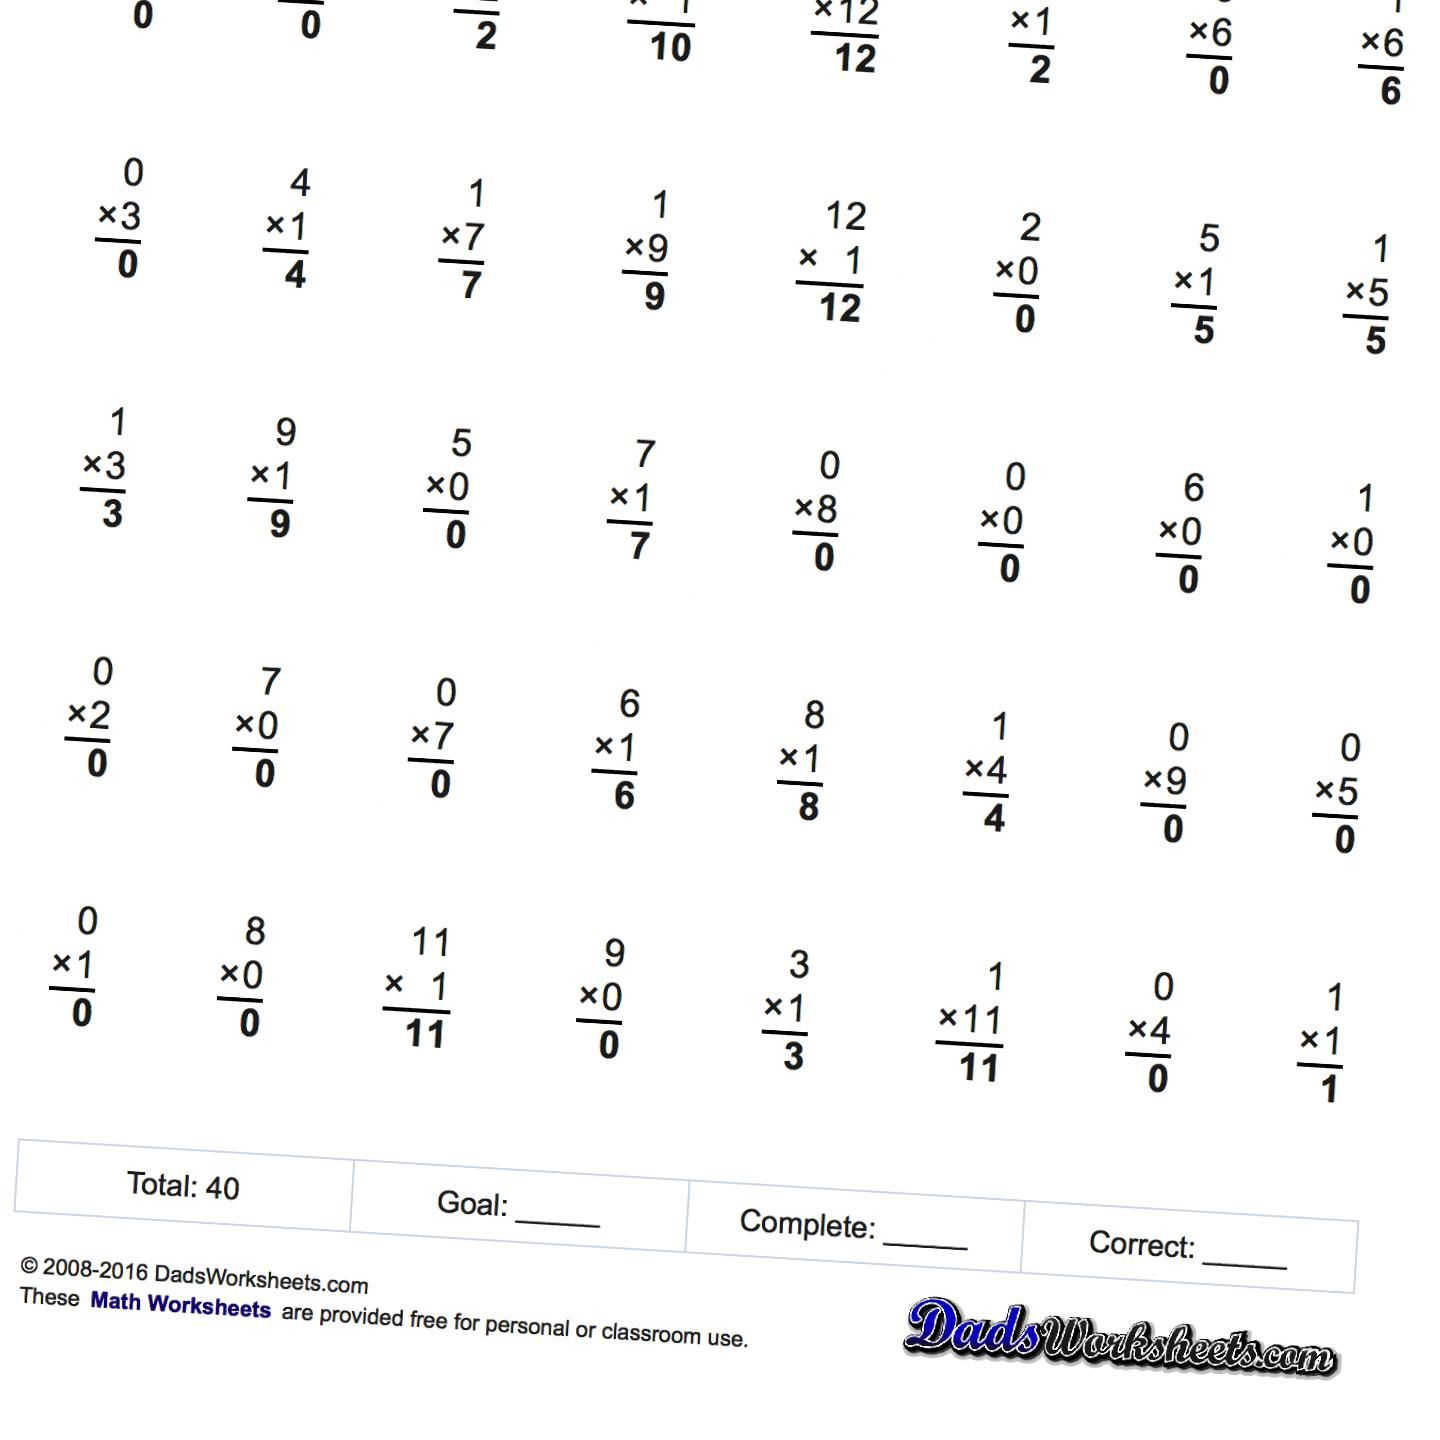 Math Worksheets Progressive Times Table Practice With X12